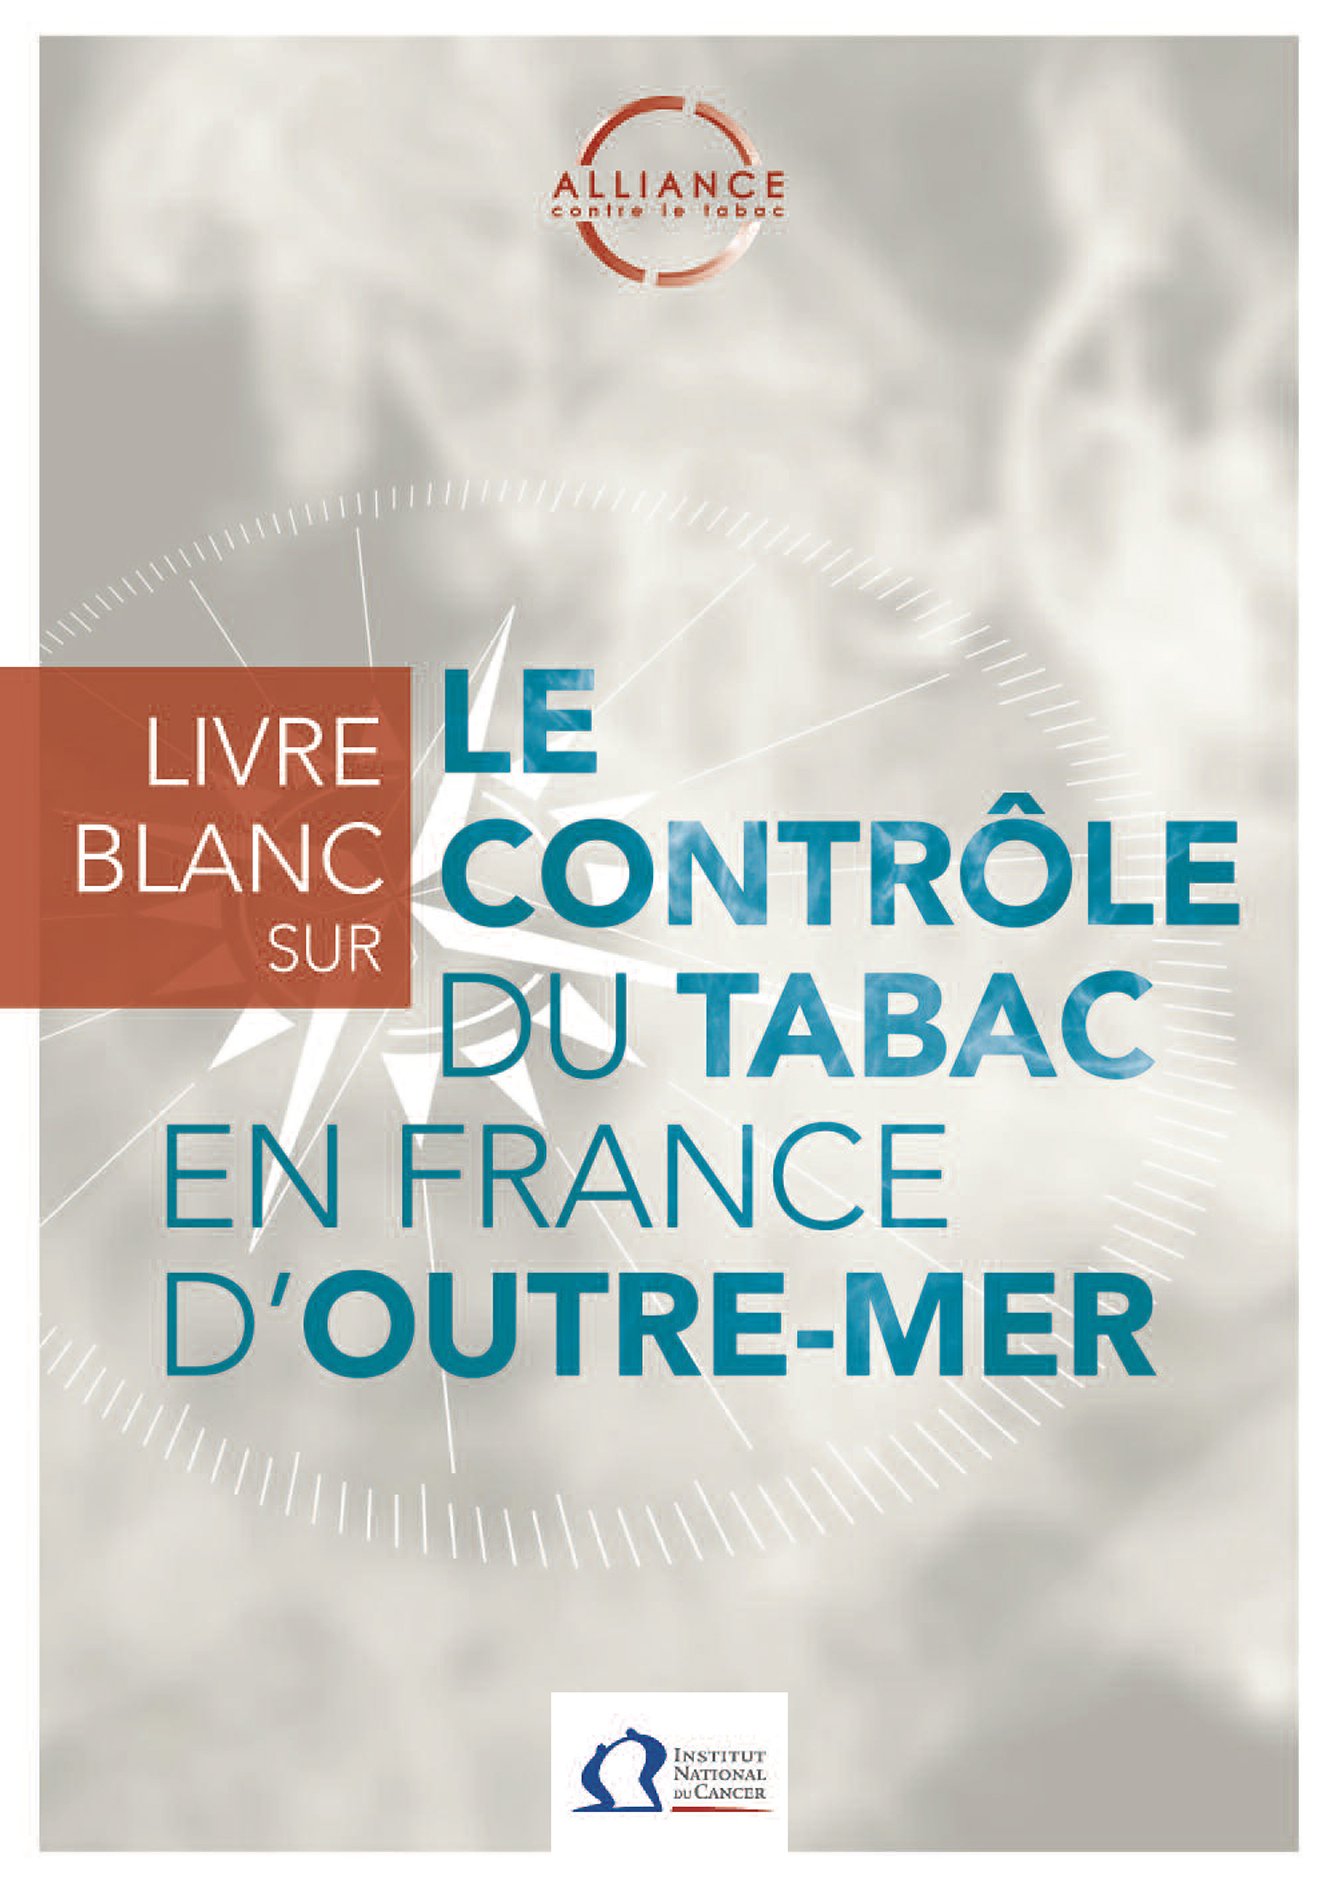 ACT_Livre-blanc-contrôle-tabac-outre-mer-2014_Page_001.jpg